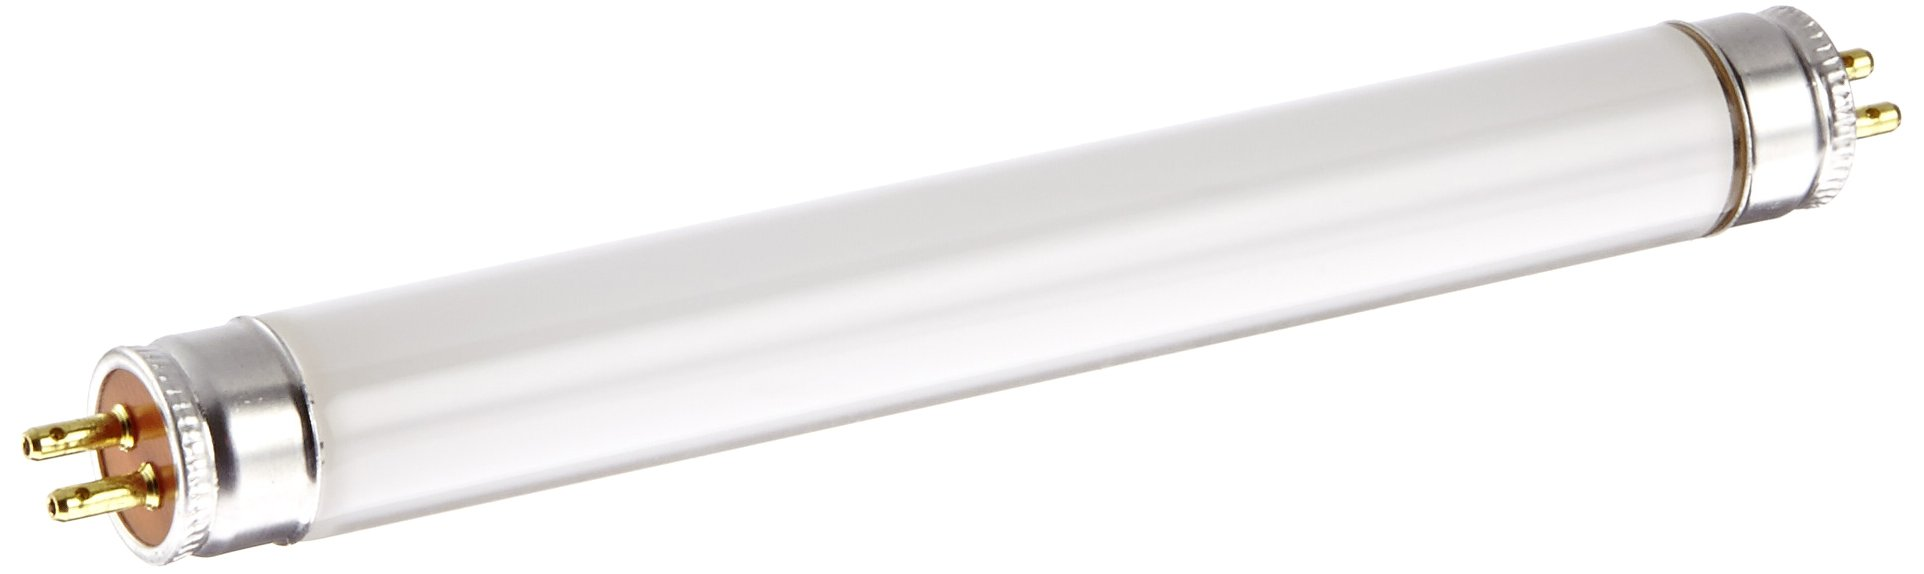 UVP 34-0005-01 Replacement UV Tube for EL Series UV Lamps, 6'' Length, 365nm Longwave, 4W